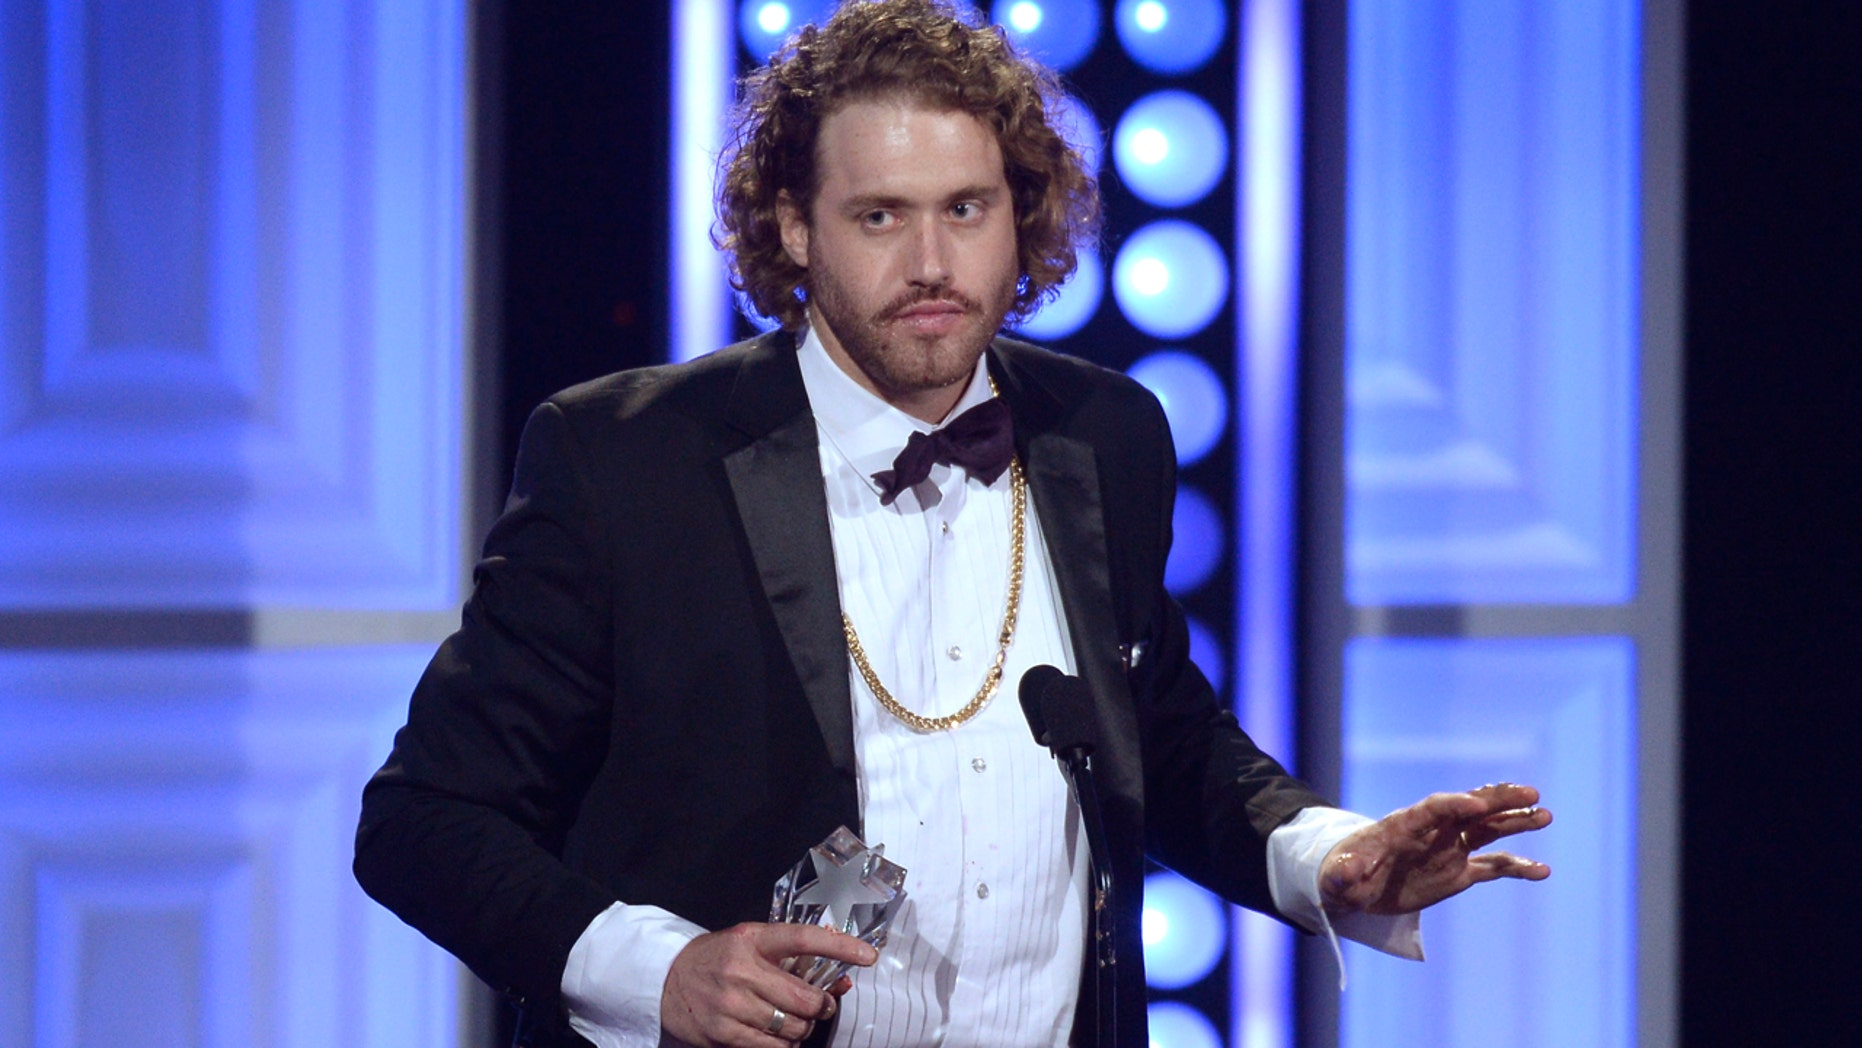 Comedy Central canned T.J. Miller's show following sexual assault accusations.